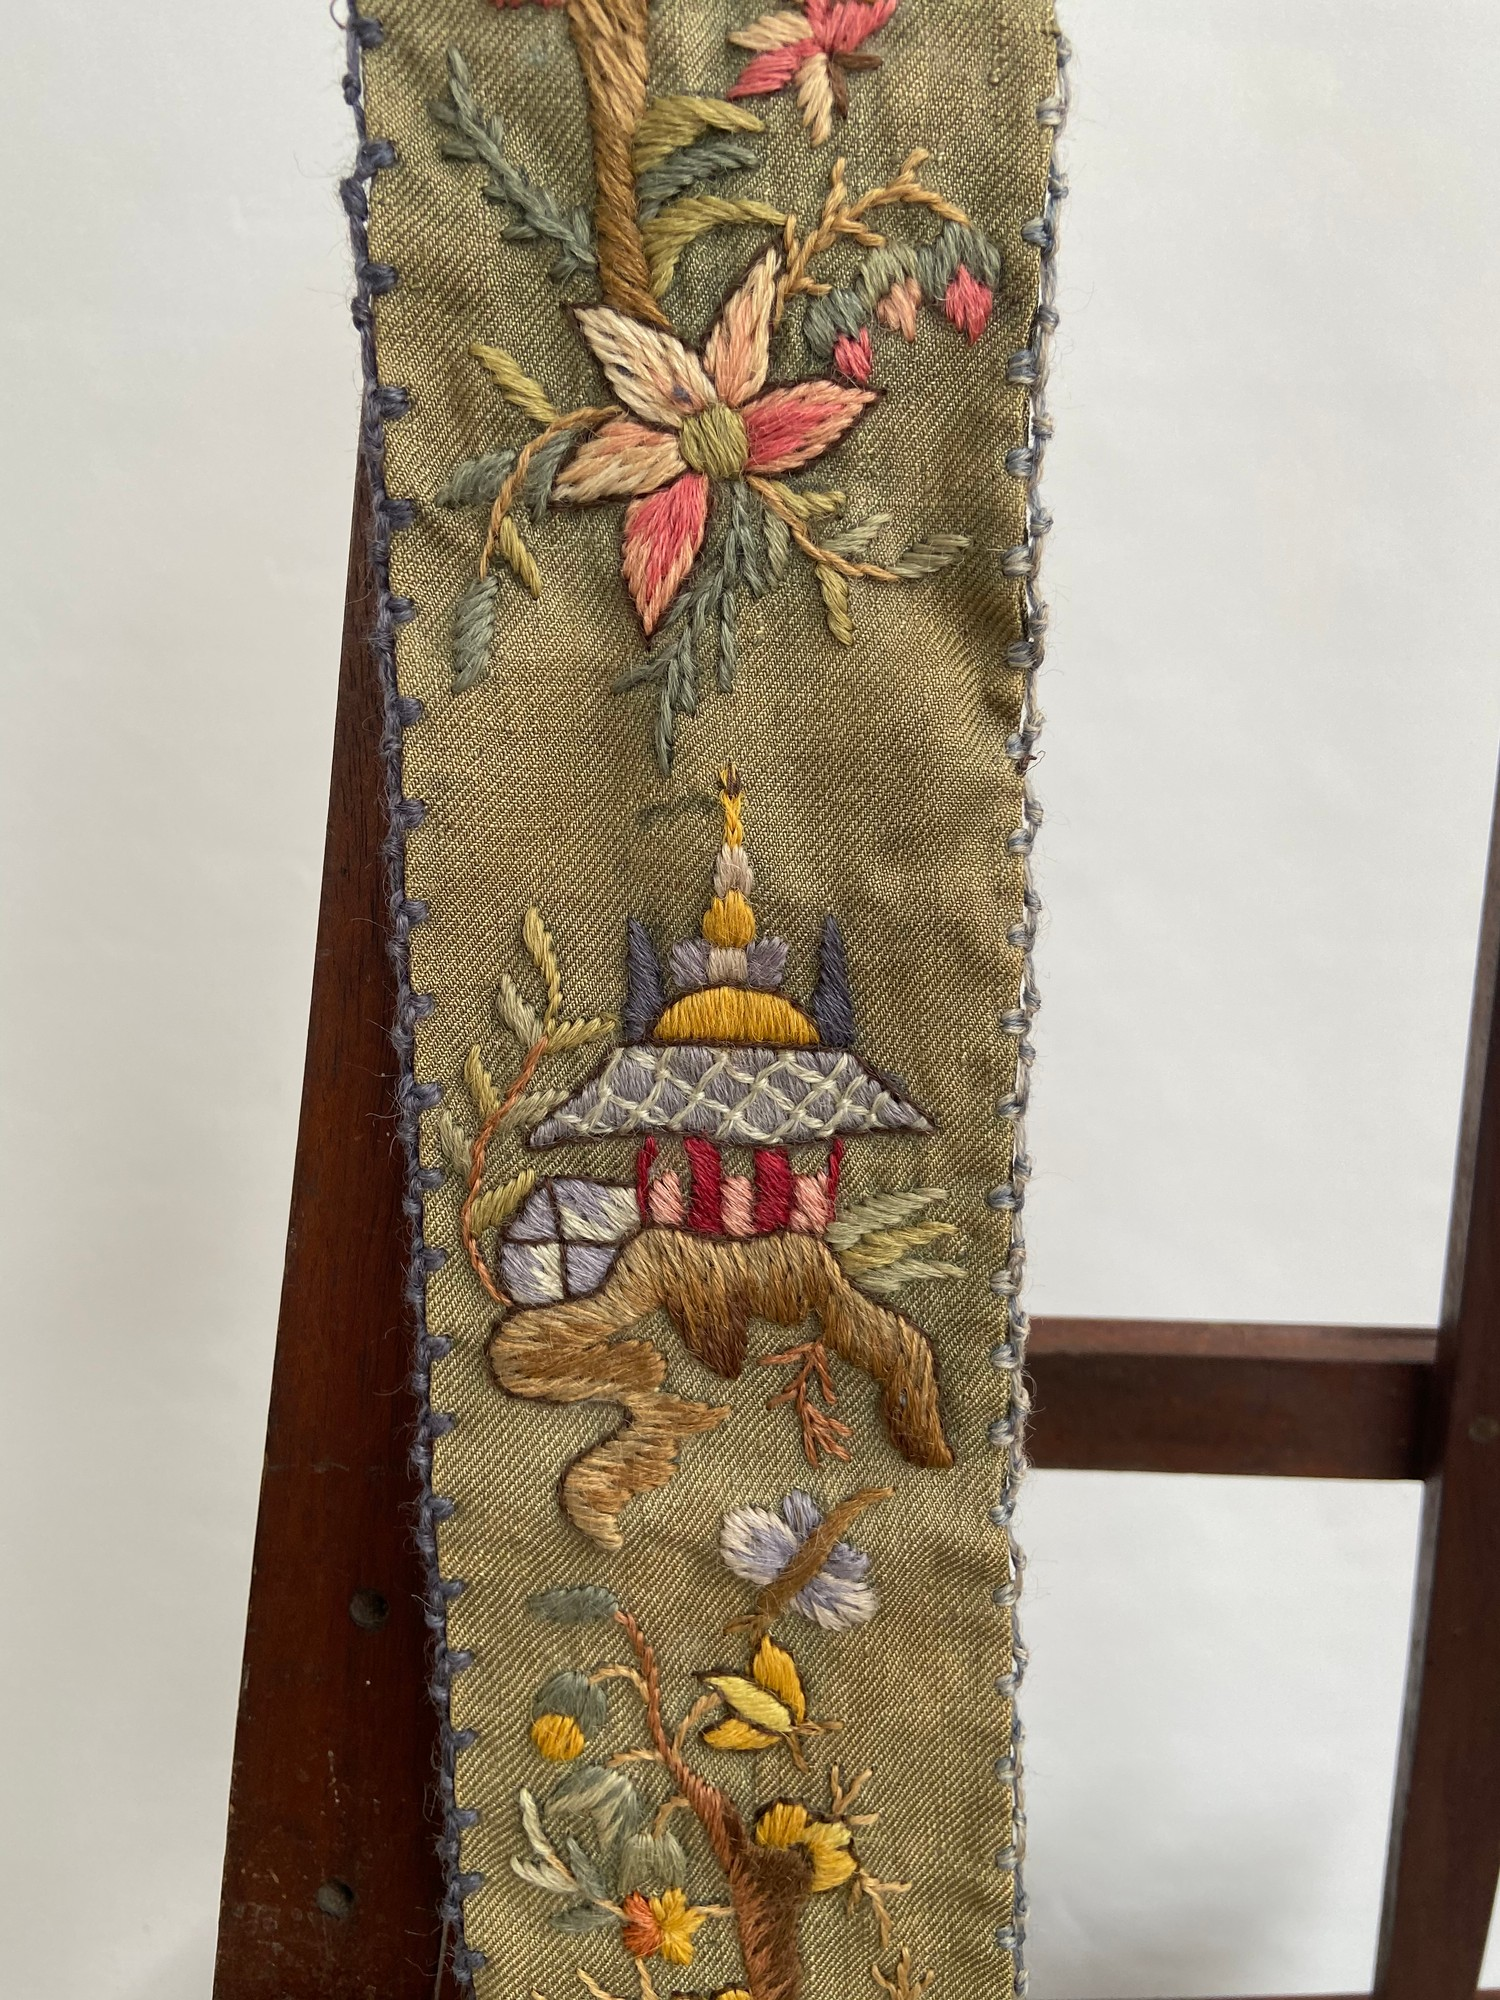 A Chinese wall tapestry depicting various figures. [175cm in length] - Image 2 of 5